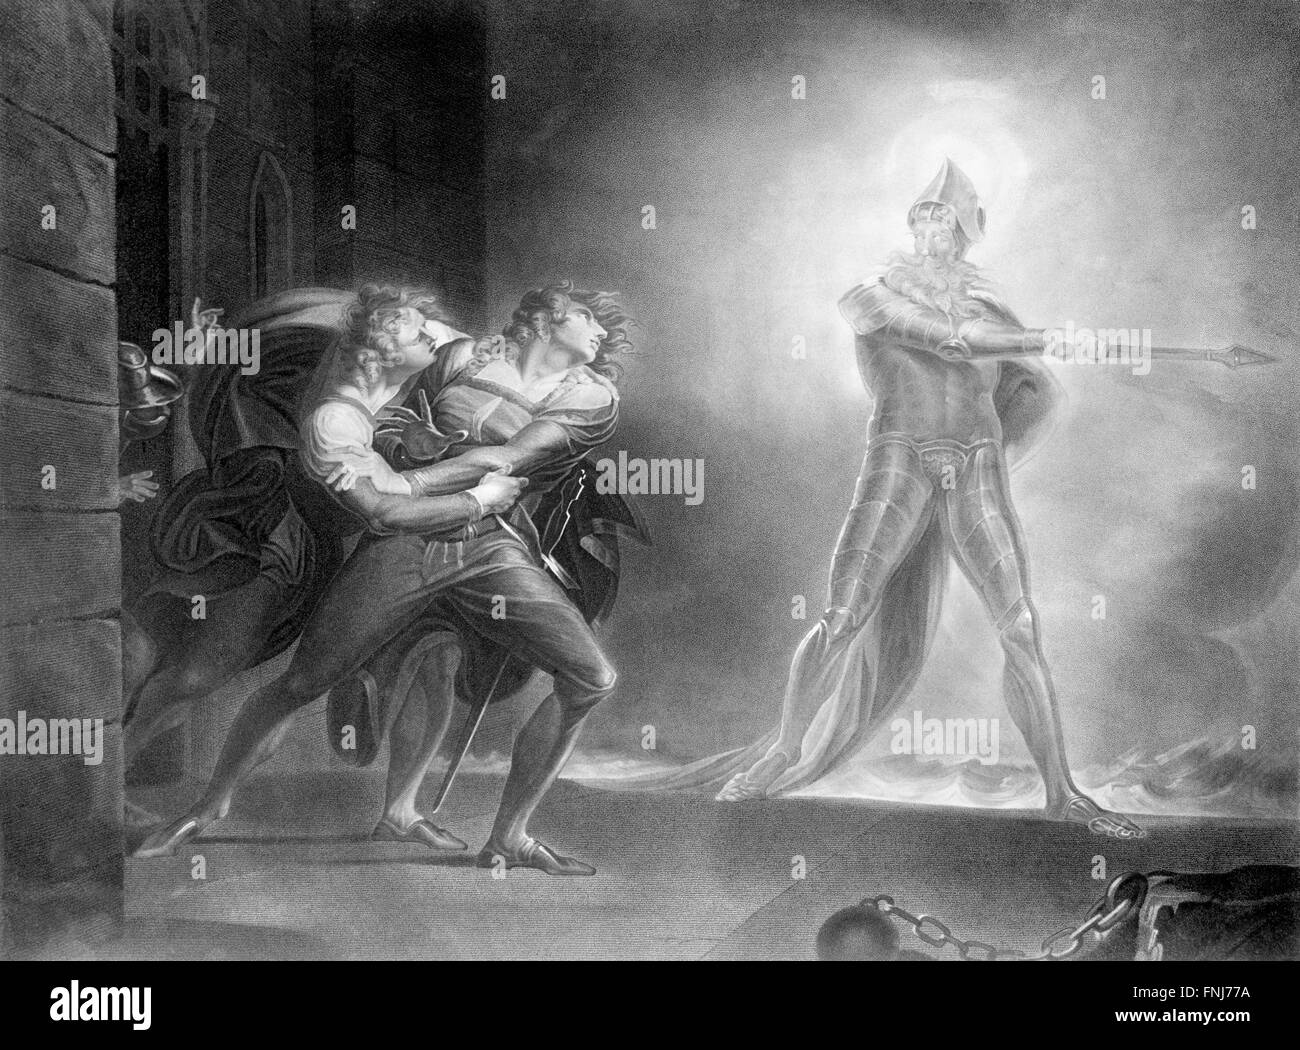 Hamlet, Horatio, Marcellus, and the Ghost in front of the Palace of Elsinor. from a painting by Henry Fuseli, 1796 - Stock Image